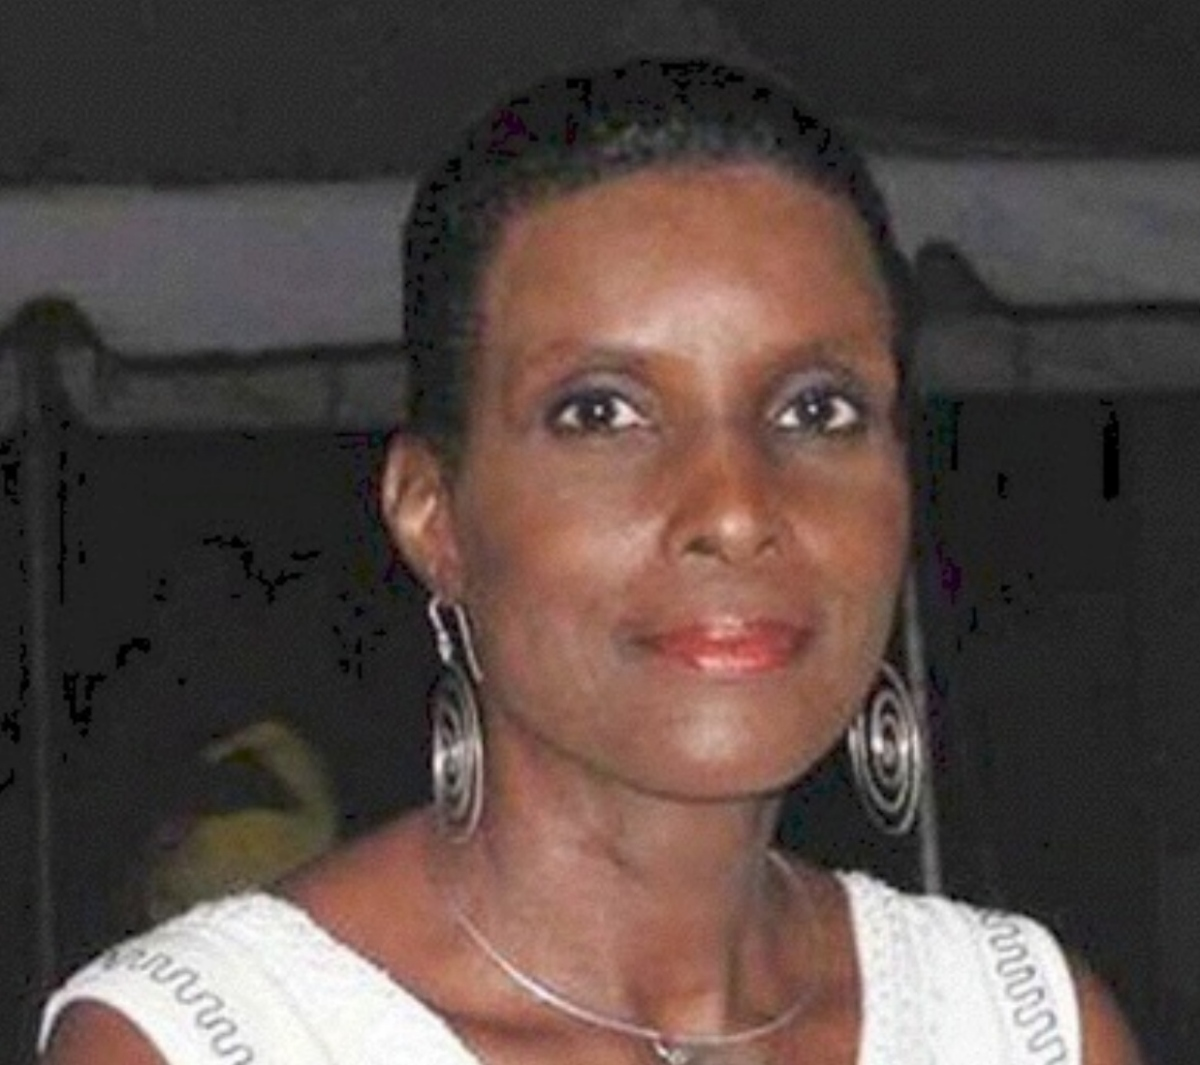 Haitian National, Myrtha De Sulme, Explains The Dominican Republic's Injustice Against the Haitian People Which Should Have Disqualified the Prime Minister from Receiving Jamaica's HighestHonour